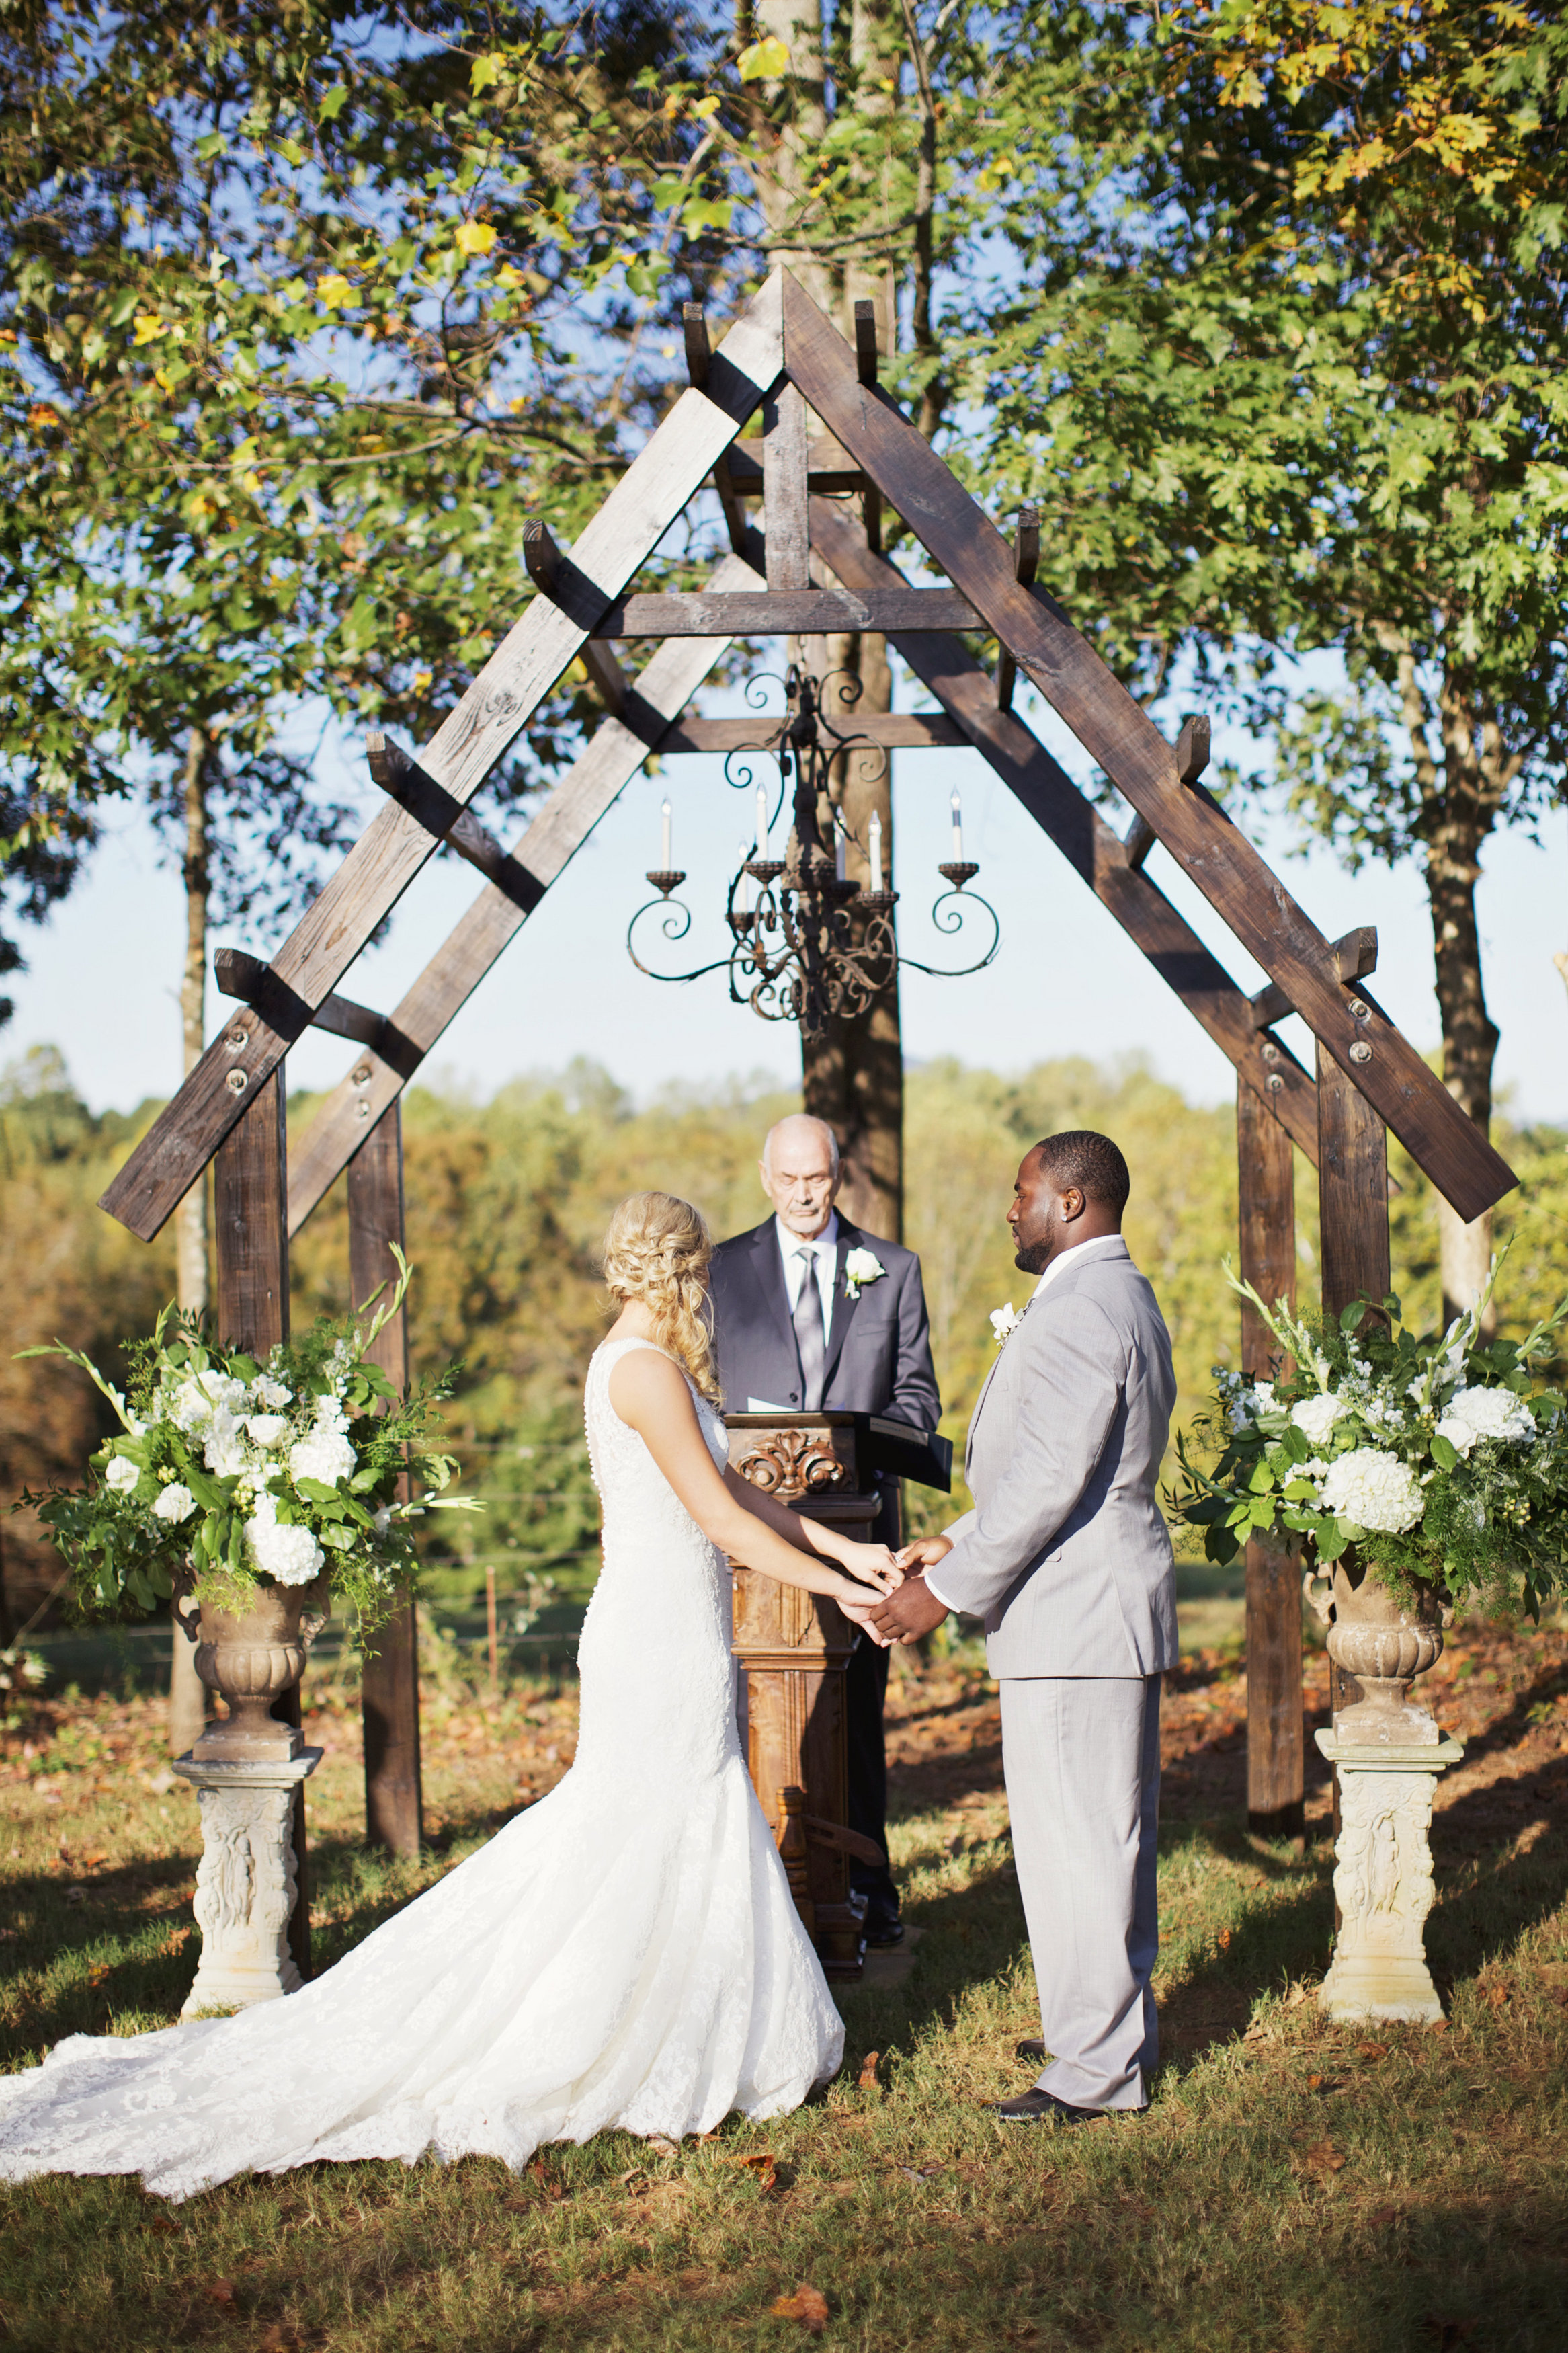 An Intimate Backyard Wedding featuring Traditional Wedding Florals. Ceremony Arrangements of White Flowers and Greenery.   Flowers by Flower Buds. Picture by Happy Everything Co.